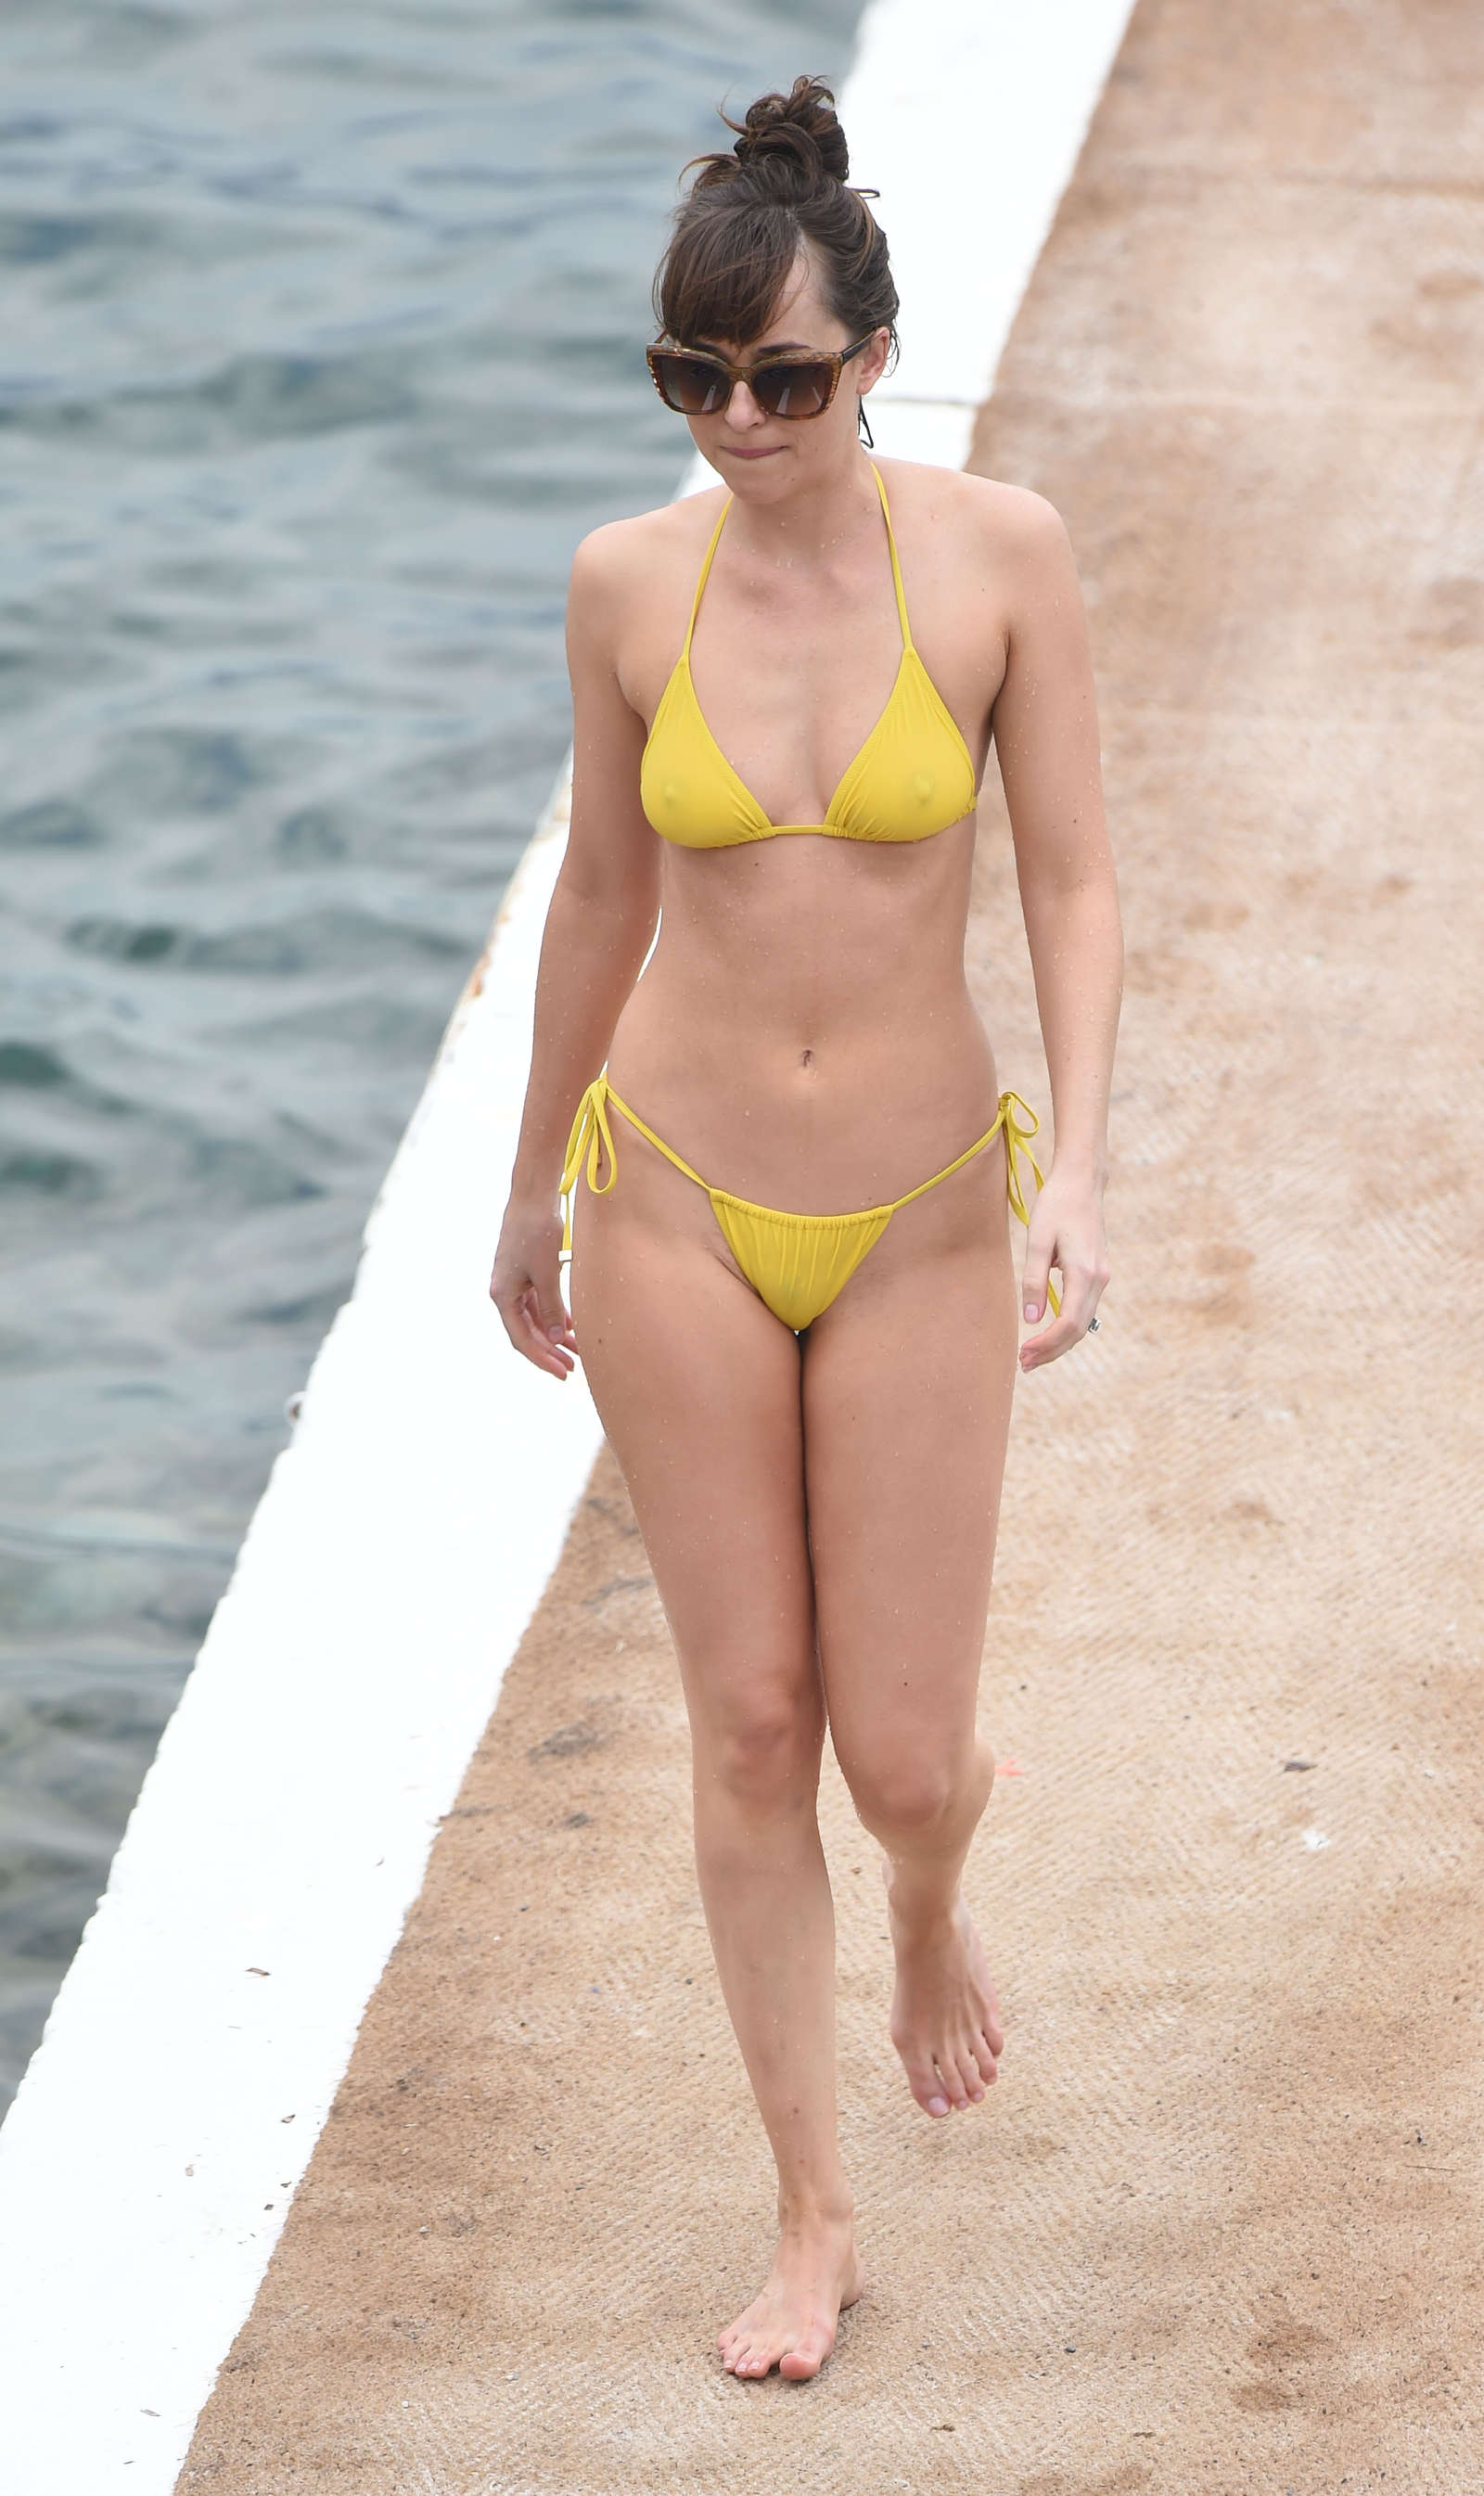 Dakota Johnson 2016 : Dakota Johnson in Yellow Bikini 2016 -12